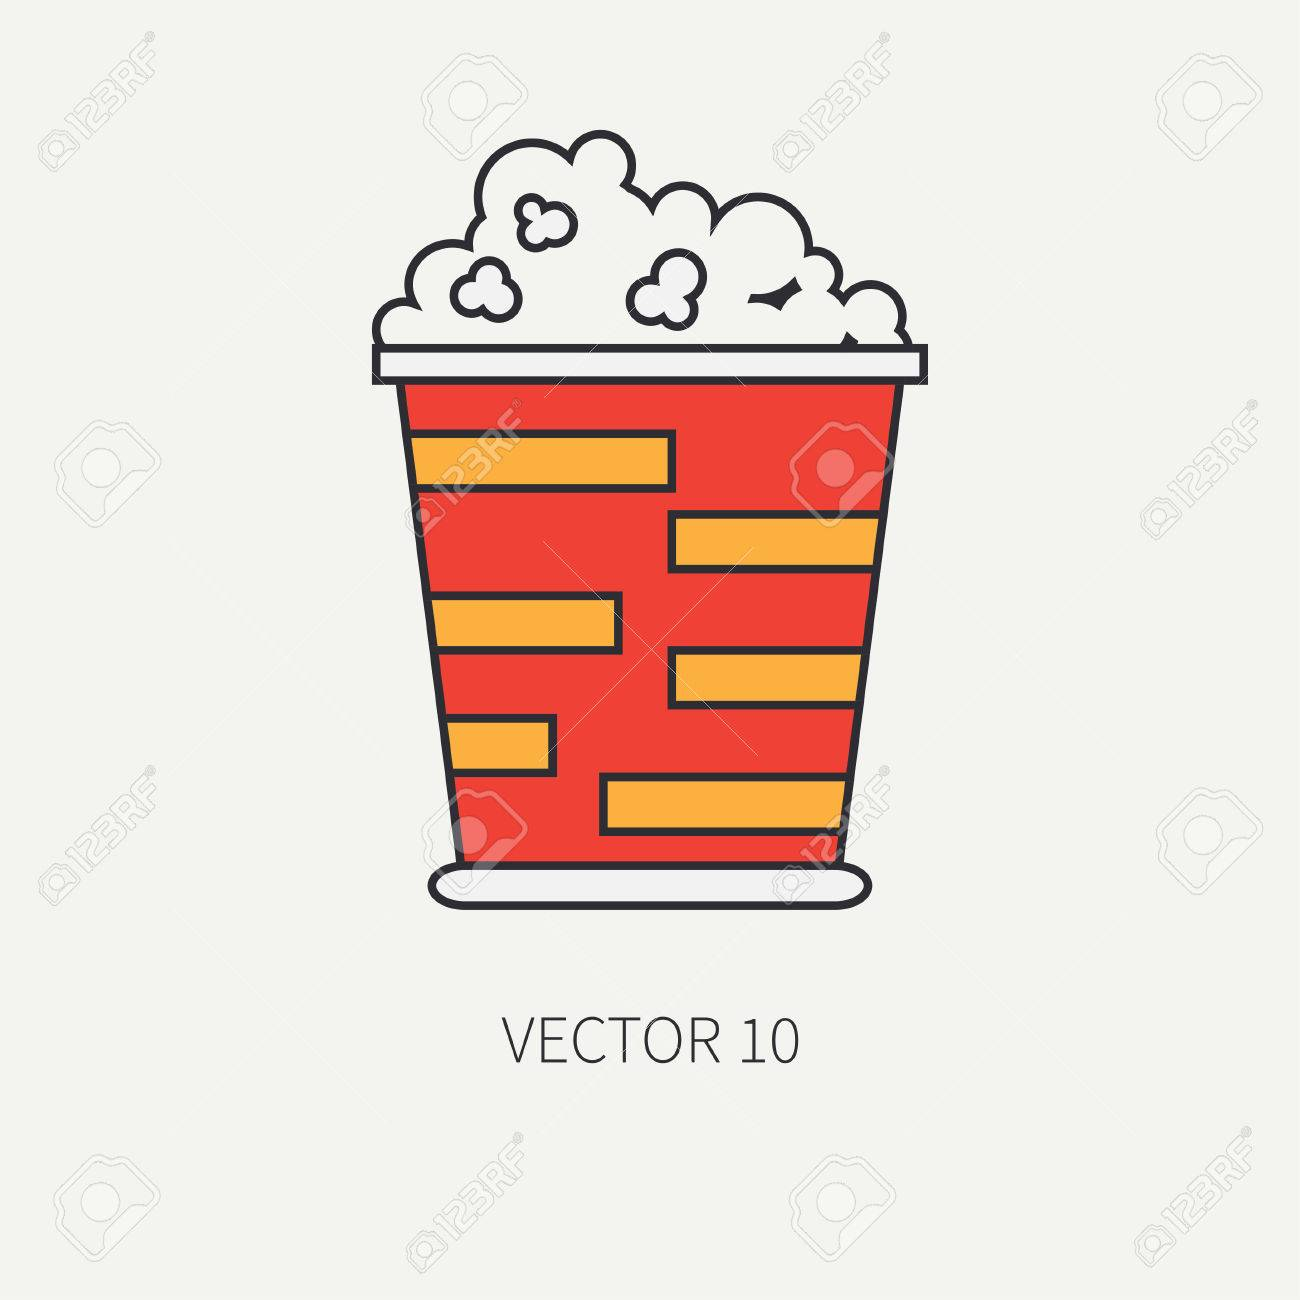 Line Flat Color Vector Icon Elements Of Movie Theater Pop Culture